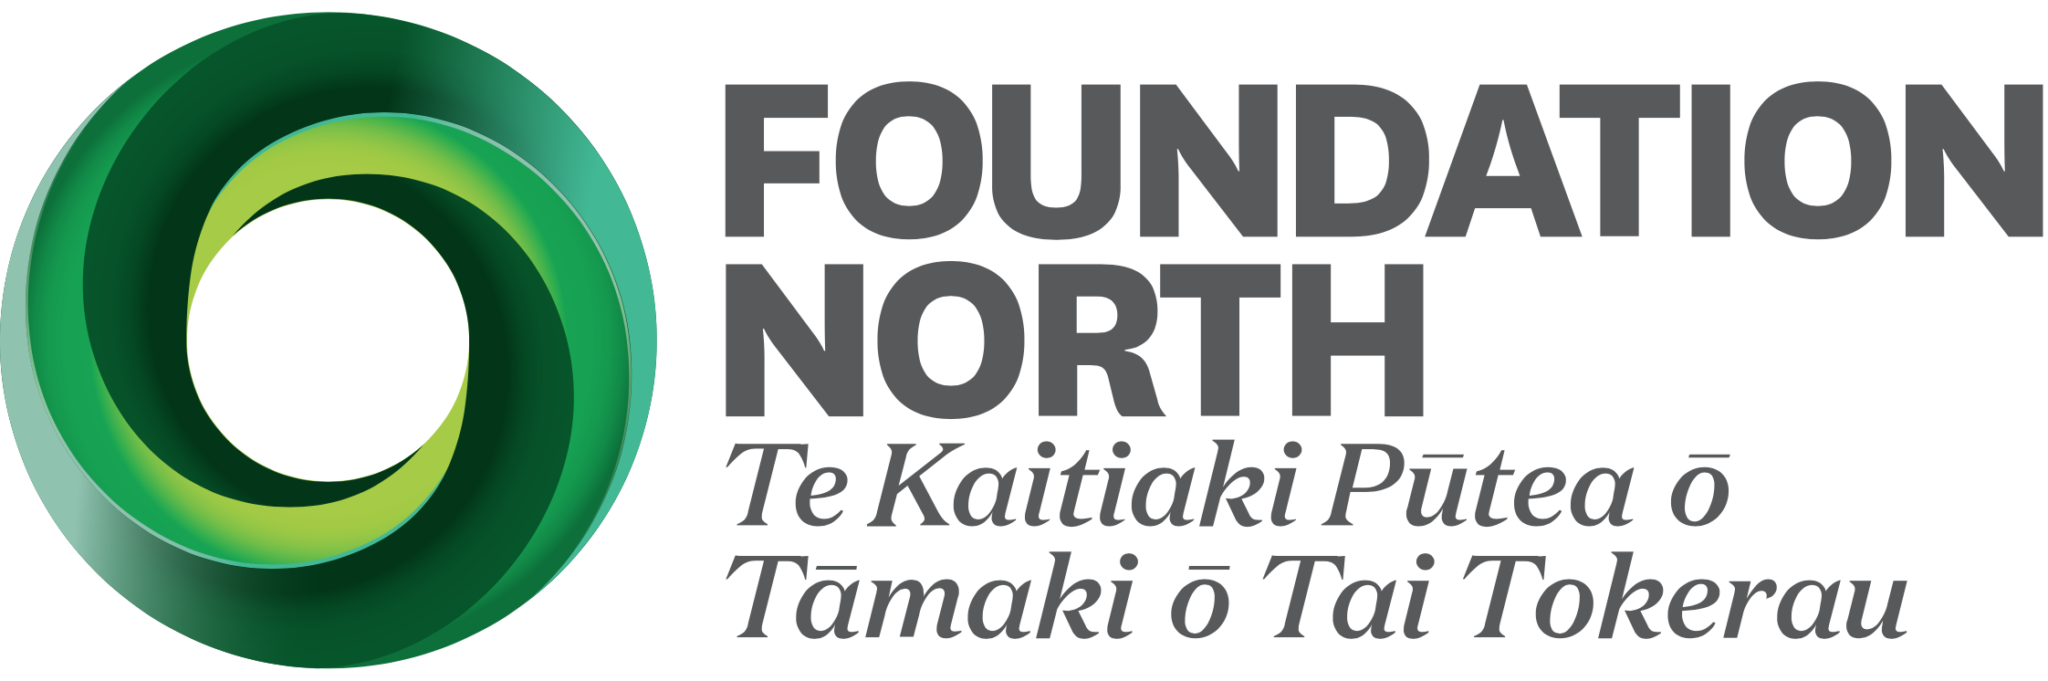 Foundation-North-logo